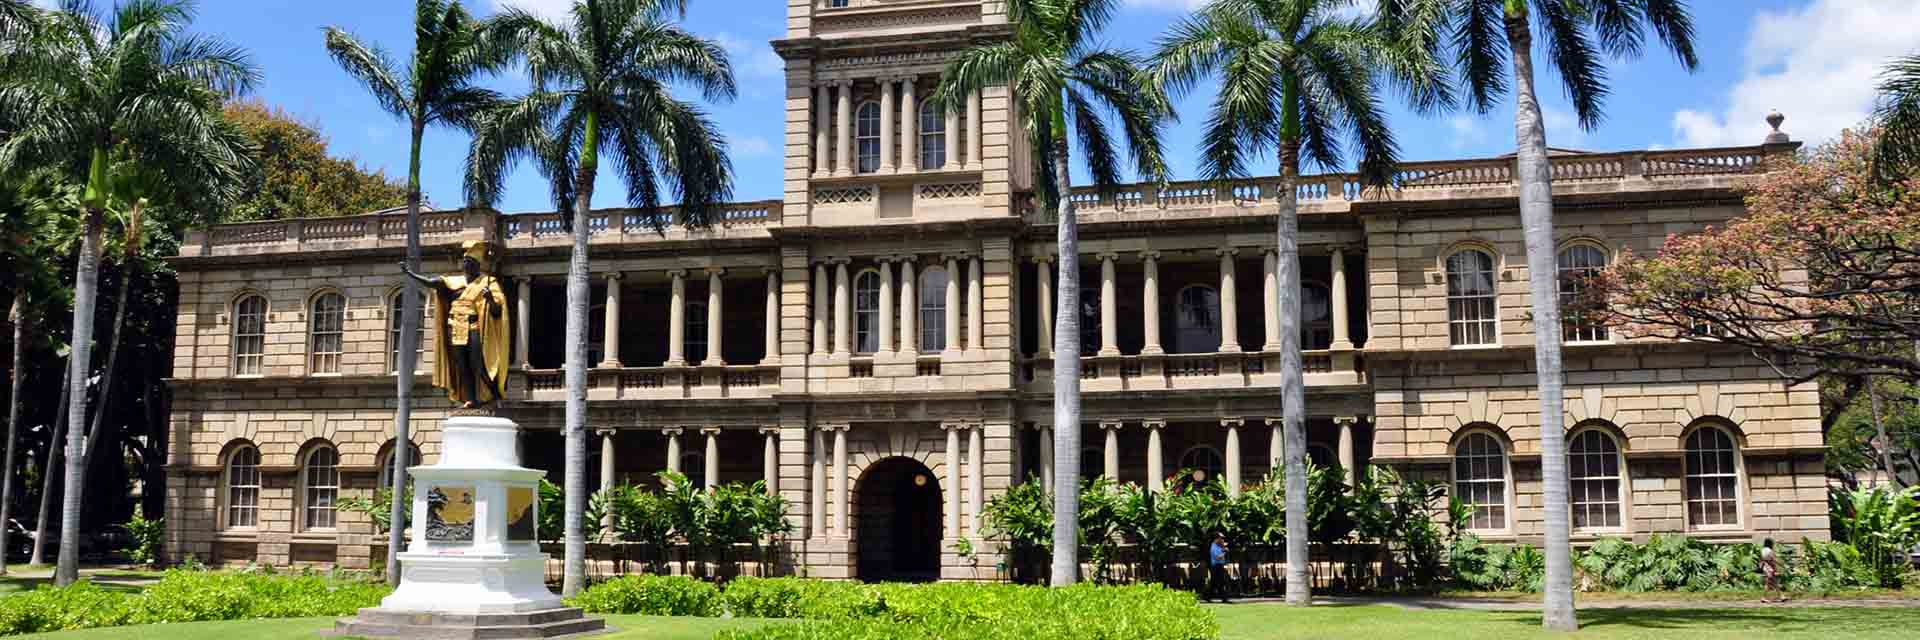 Ali'iolani Hale or House of the Heavenly King